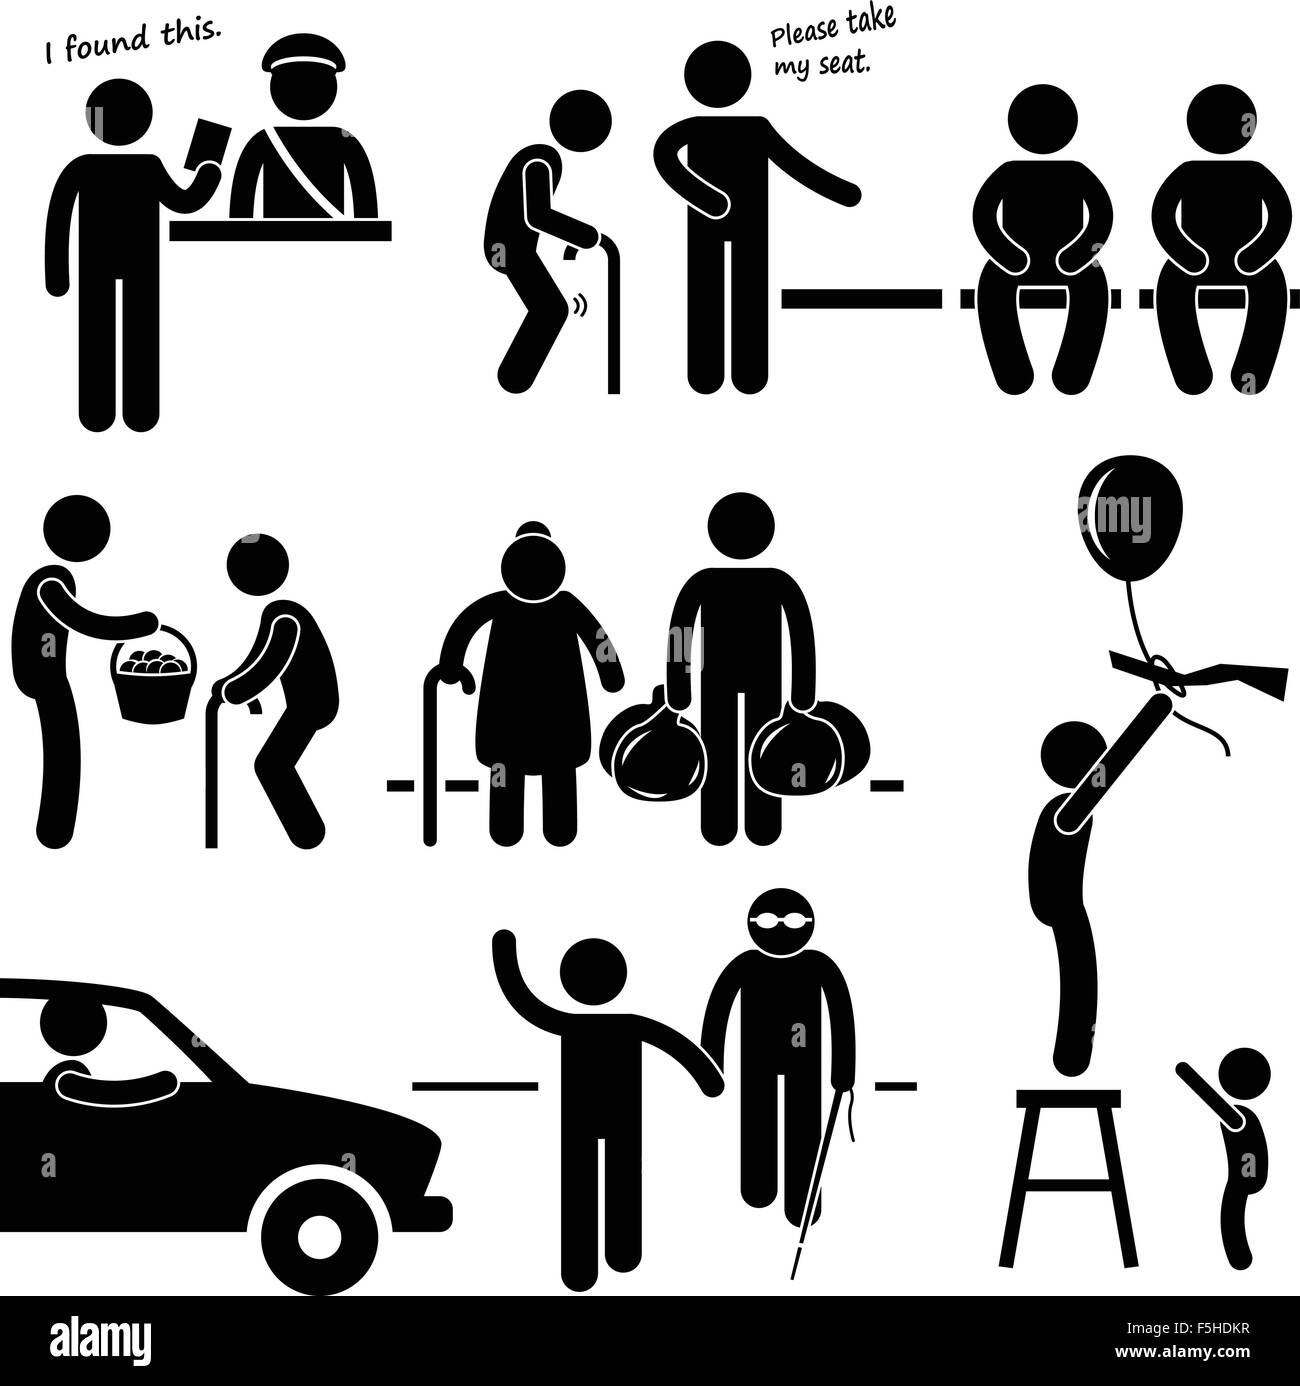 Kind Good Hearted Man Helping People Stick Figure Pictogram Icon - Stock Image